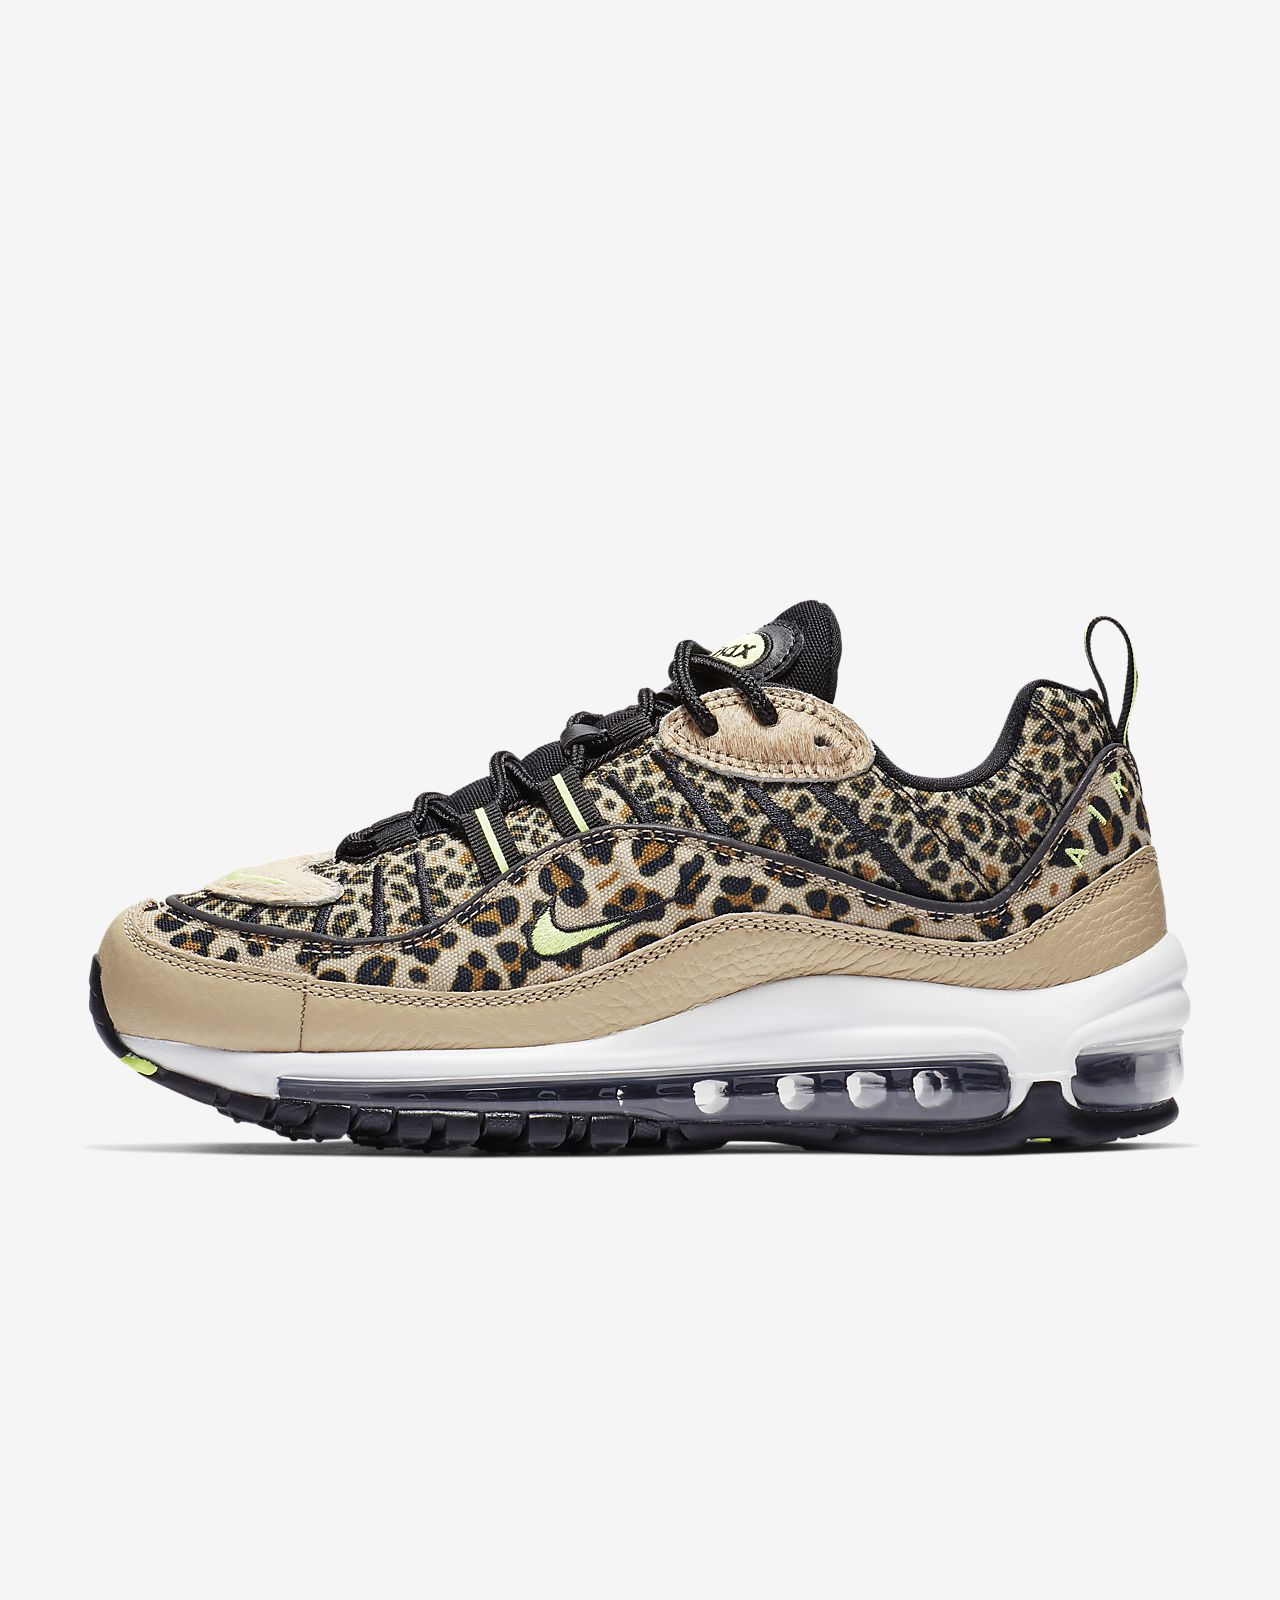 3e72f84bdcc12a Nike Air Max 98 Premium Animal Women s Shoe. Nike.com GB